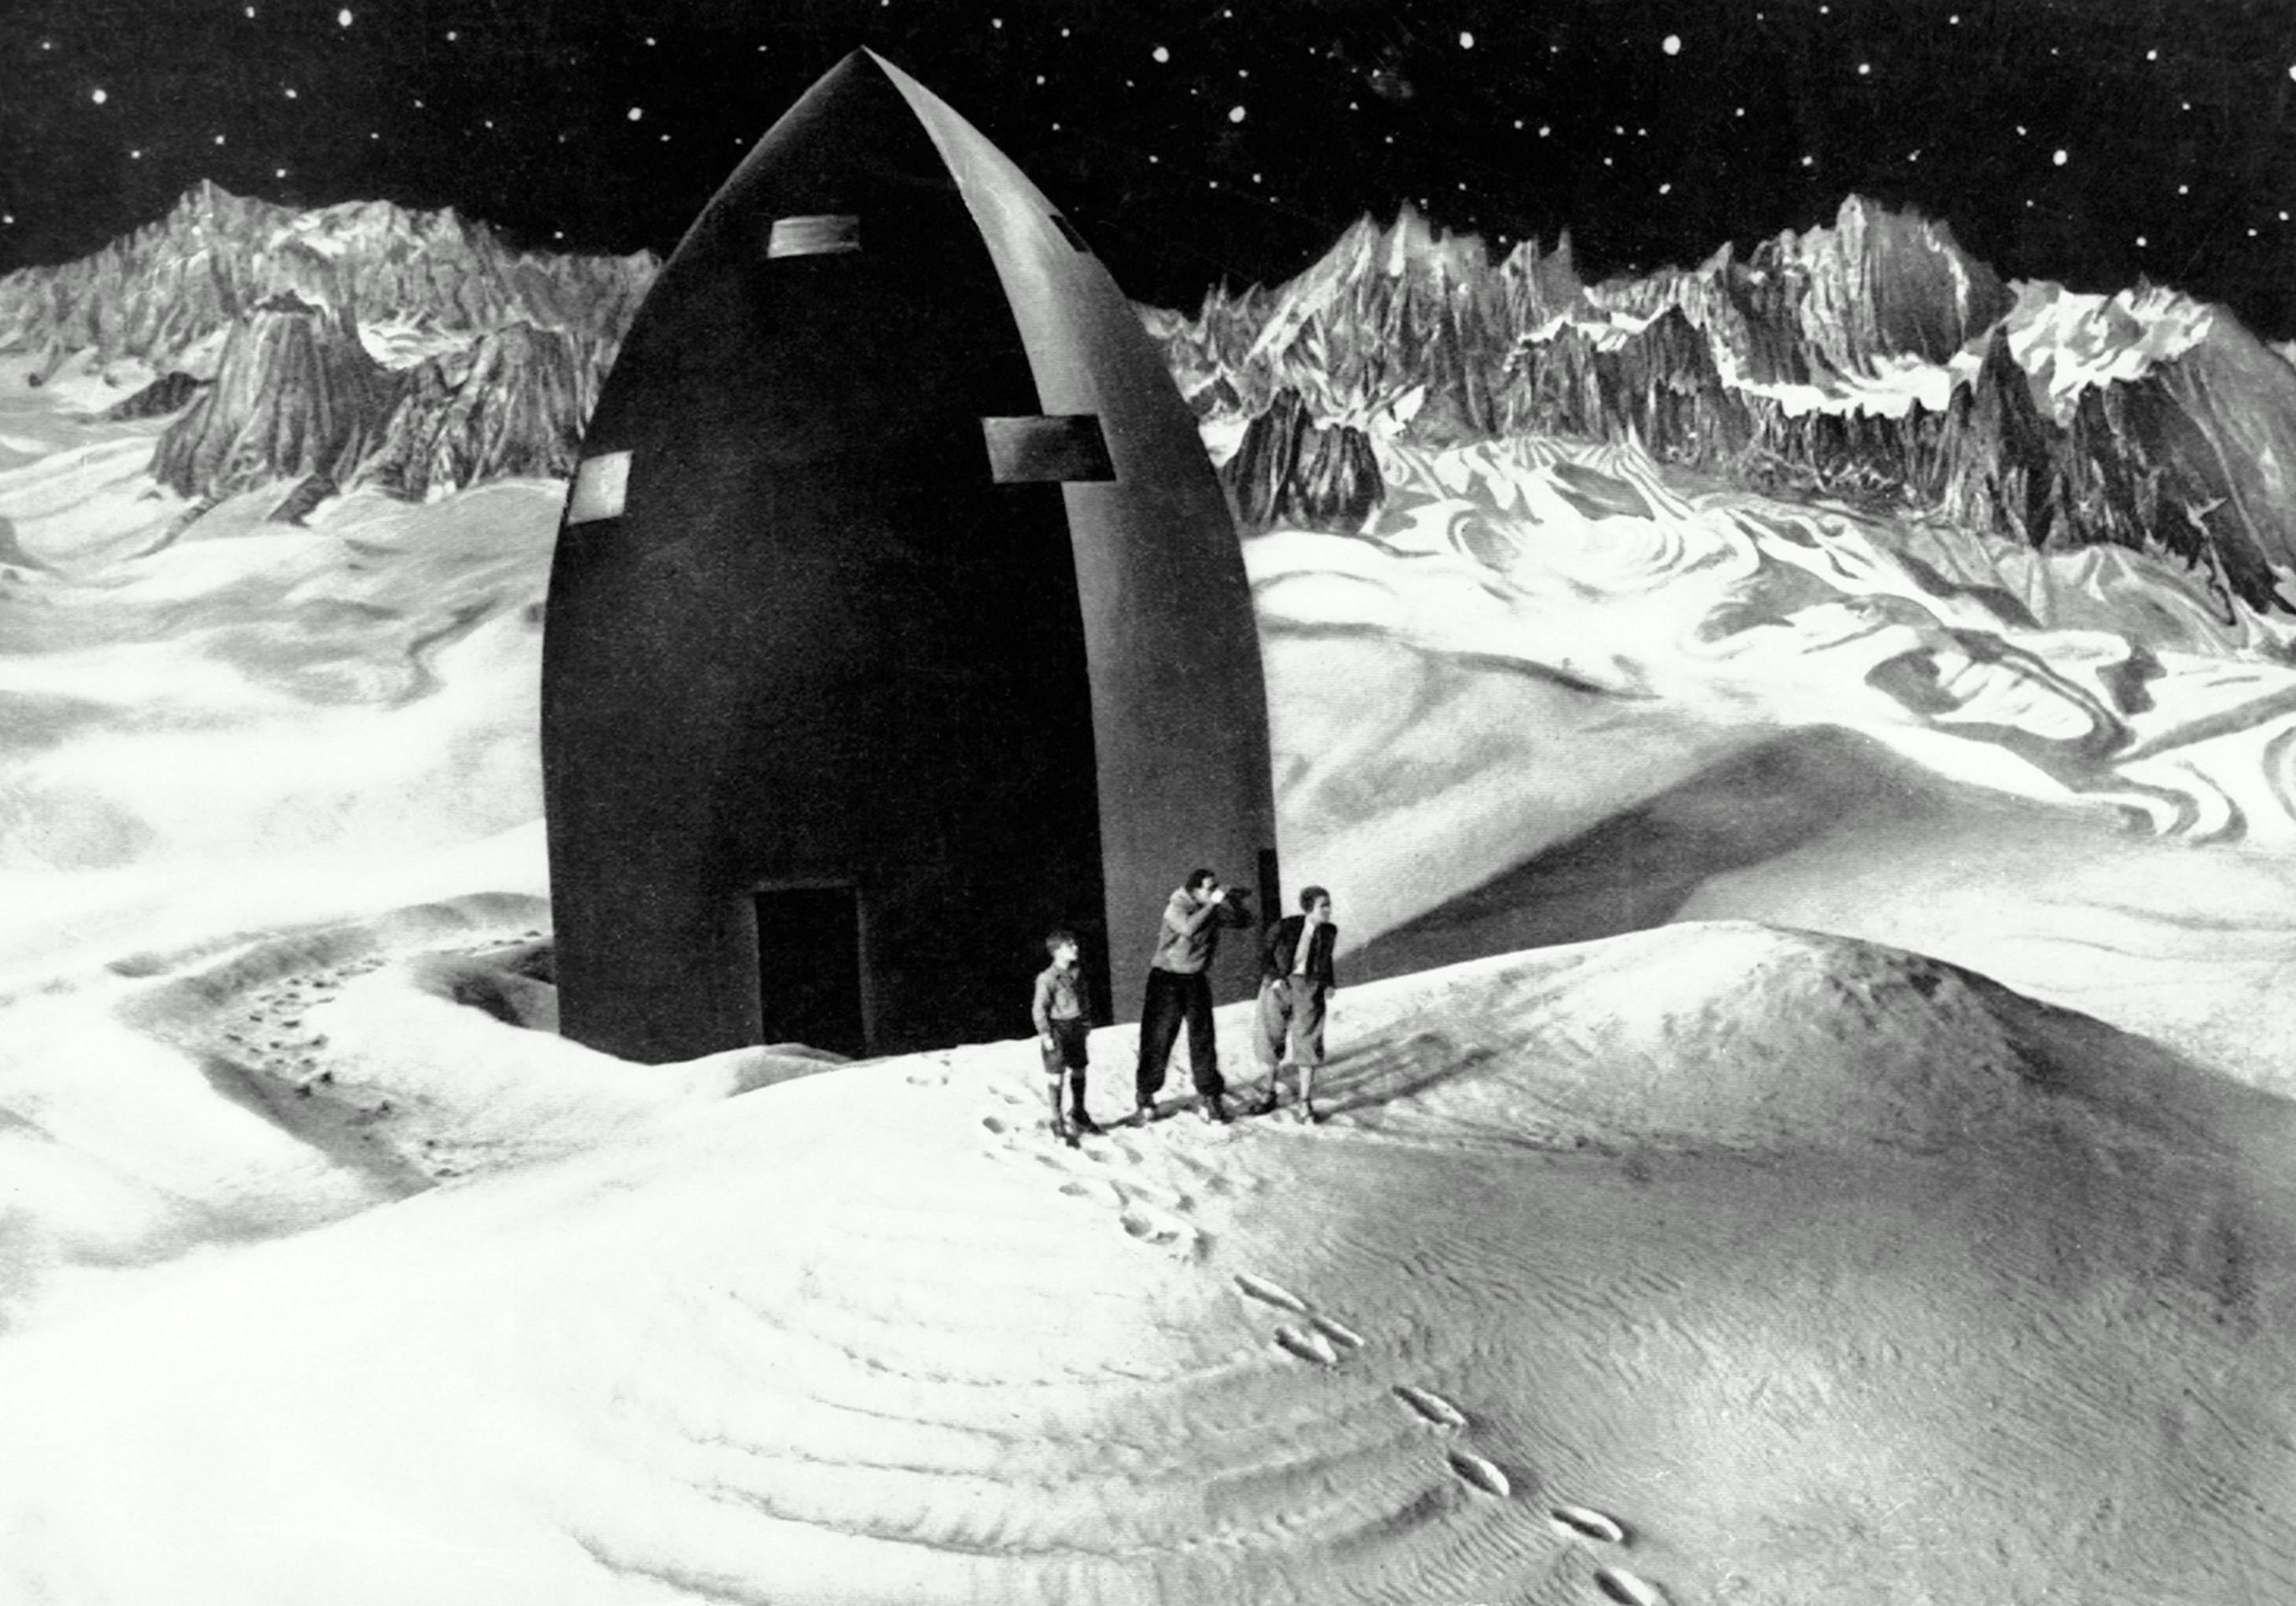 The rocket landed on The Moon as the explorers - (l to r) Gustl Gstettenbaur, Willy Fritsch and Gerda Marcus - set out in Woman in the Moon (1929)